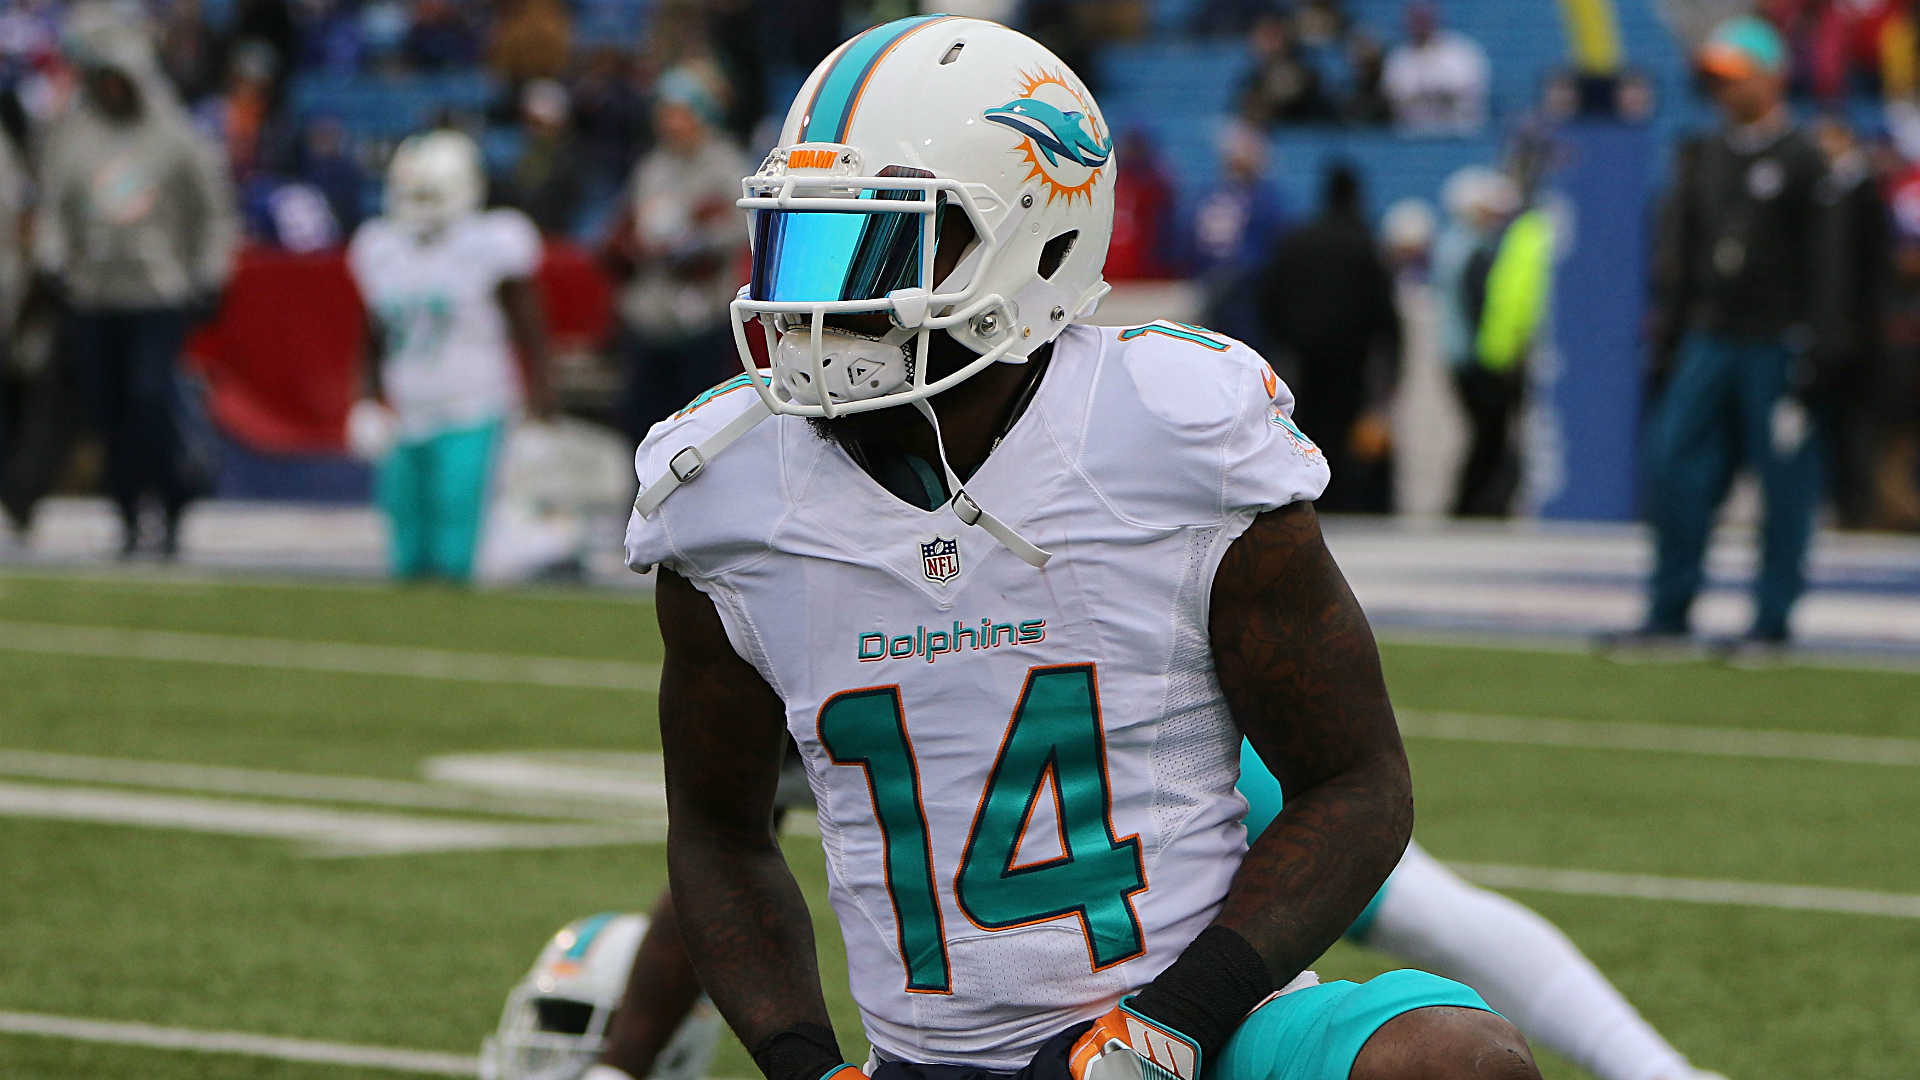 Dolphins WR Landry under investigation for battery